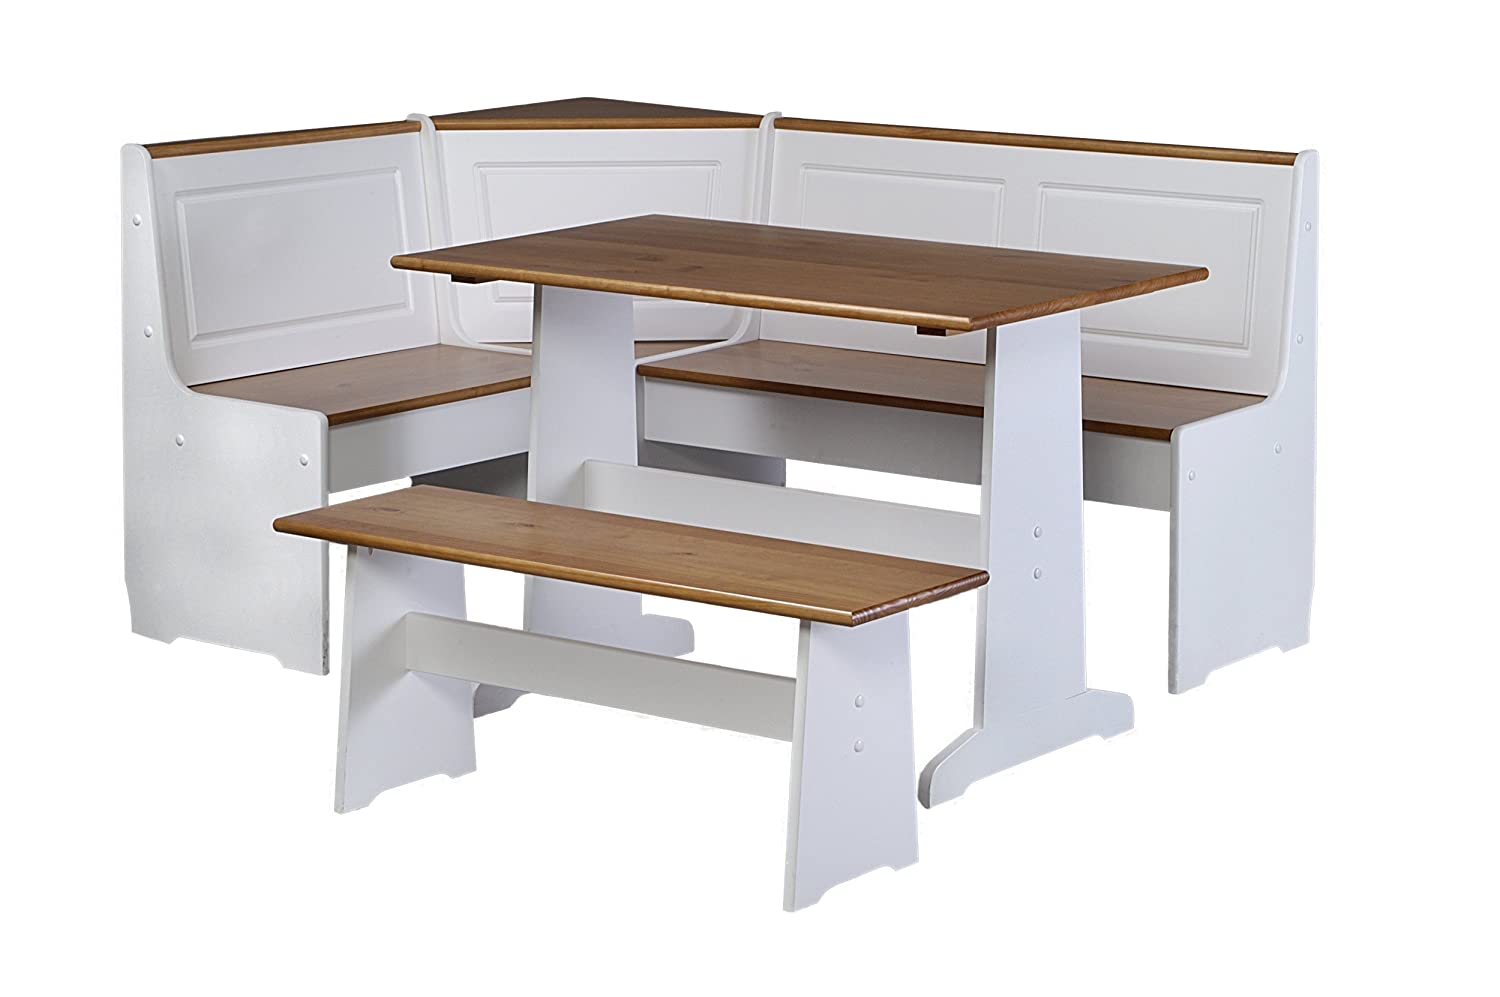 Kitchen table with bench - Kitchen bench designs ...